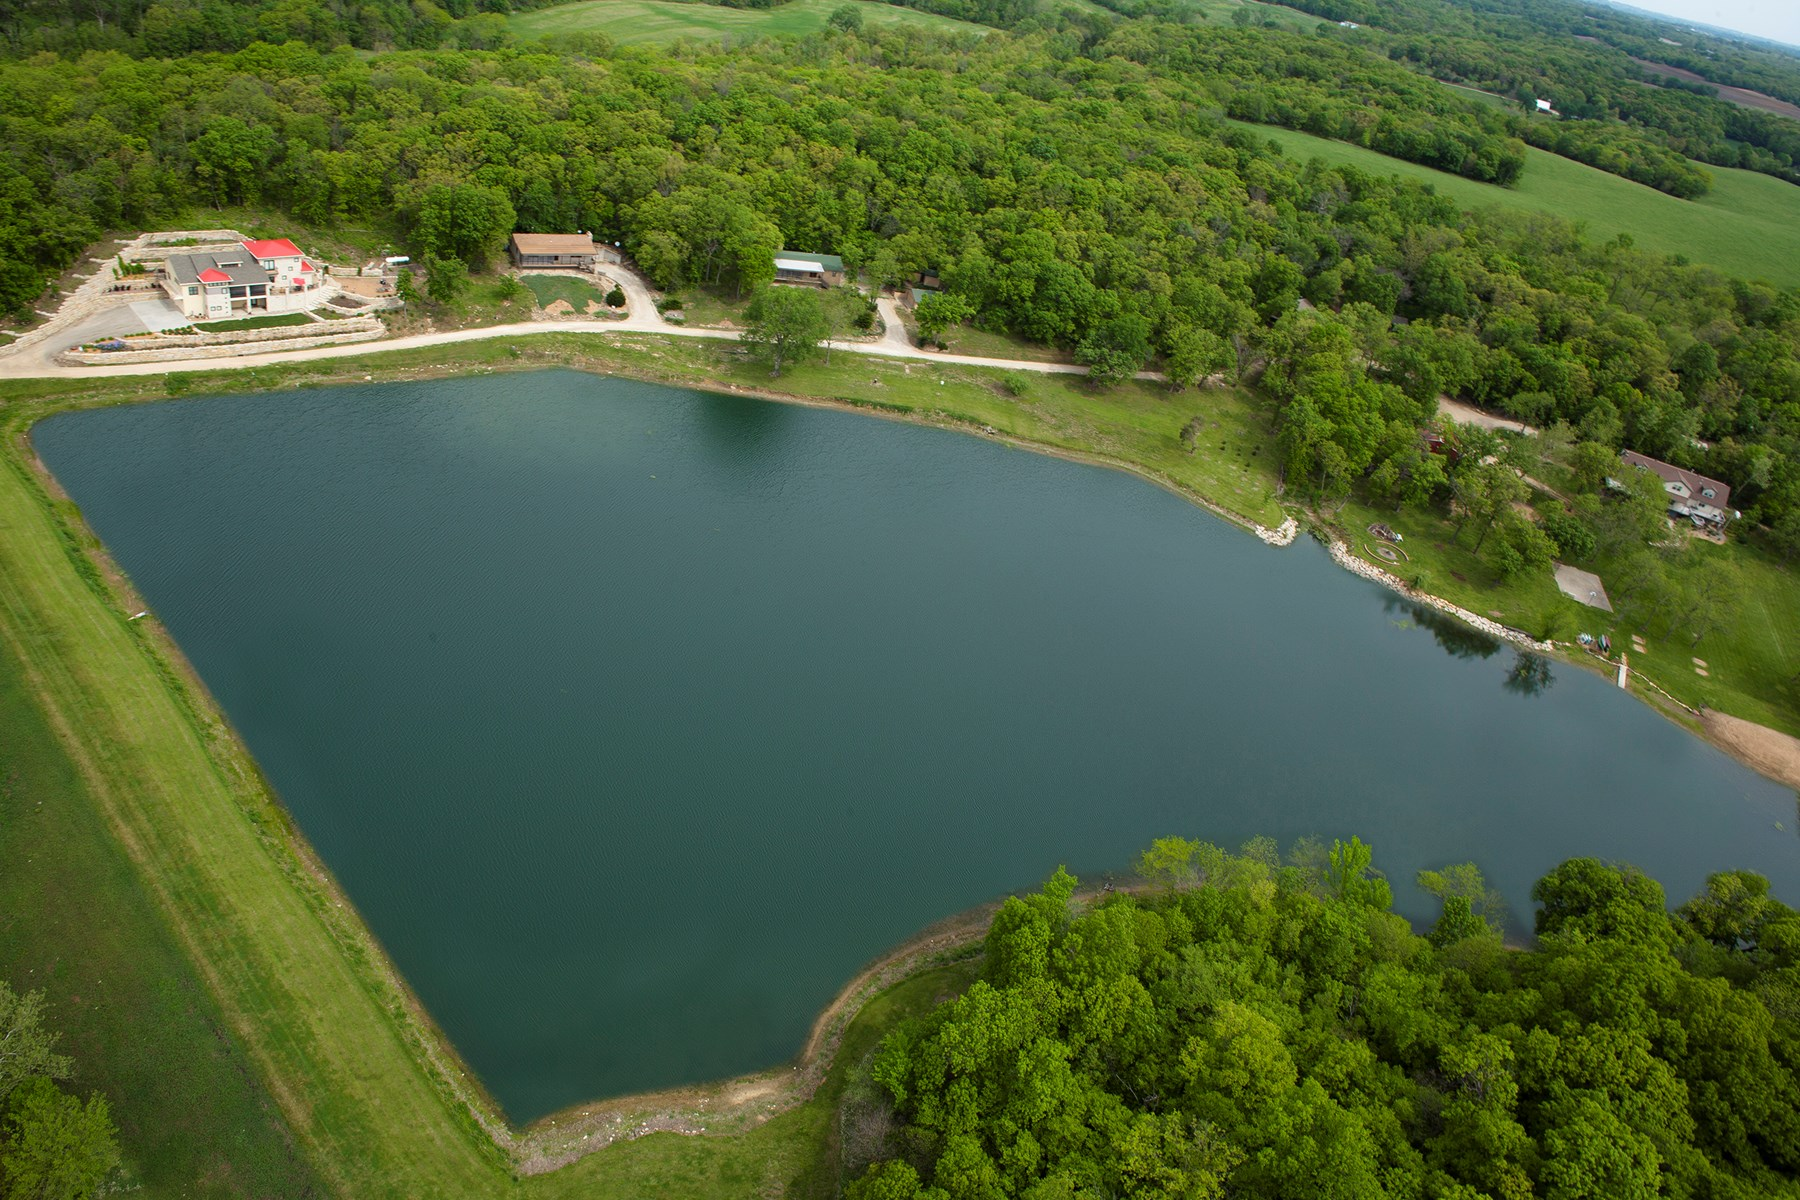 Luxury Lakeside Resort & Event Venue For Sale in Kansas